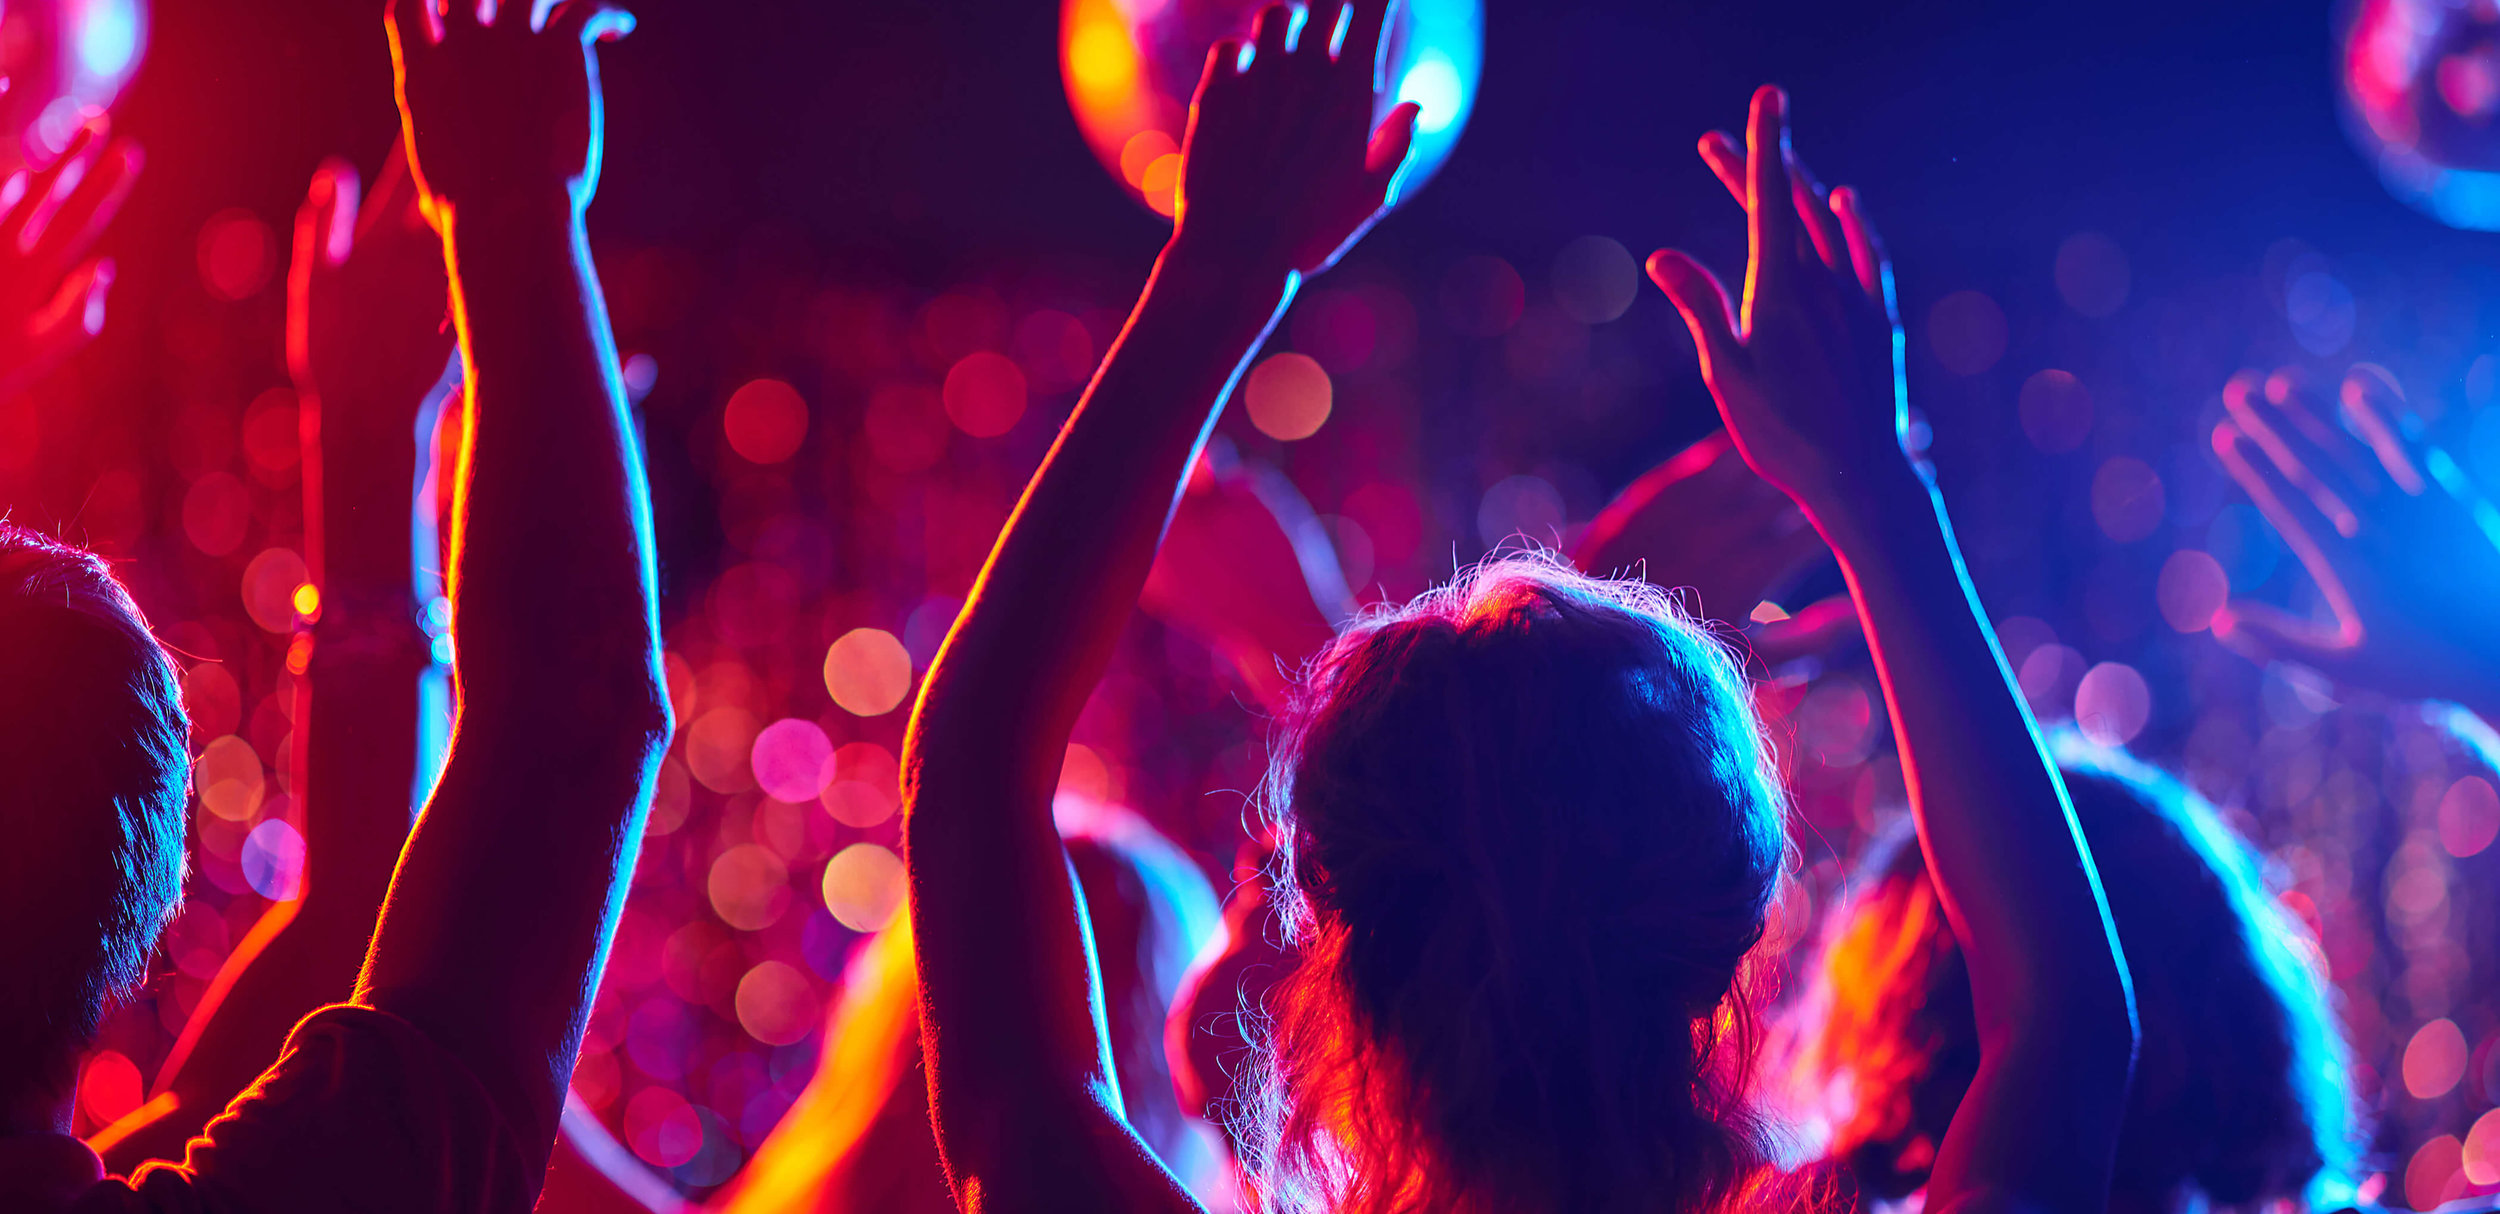 Take a bow at your very own circus themed extravaganza or dance the night away in a surged out dance floor filled with neon colors and glow lights. Either experience will dazzle your guests. -